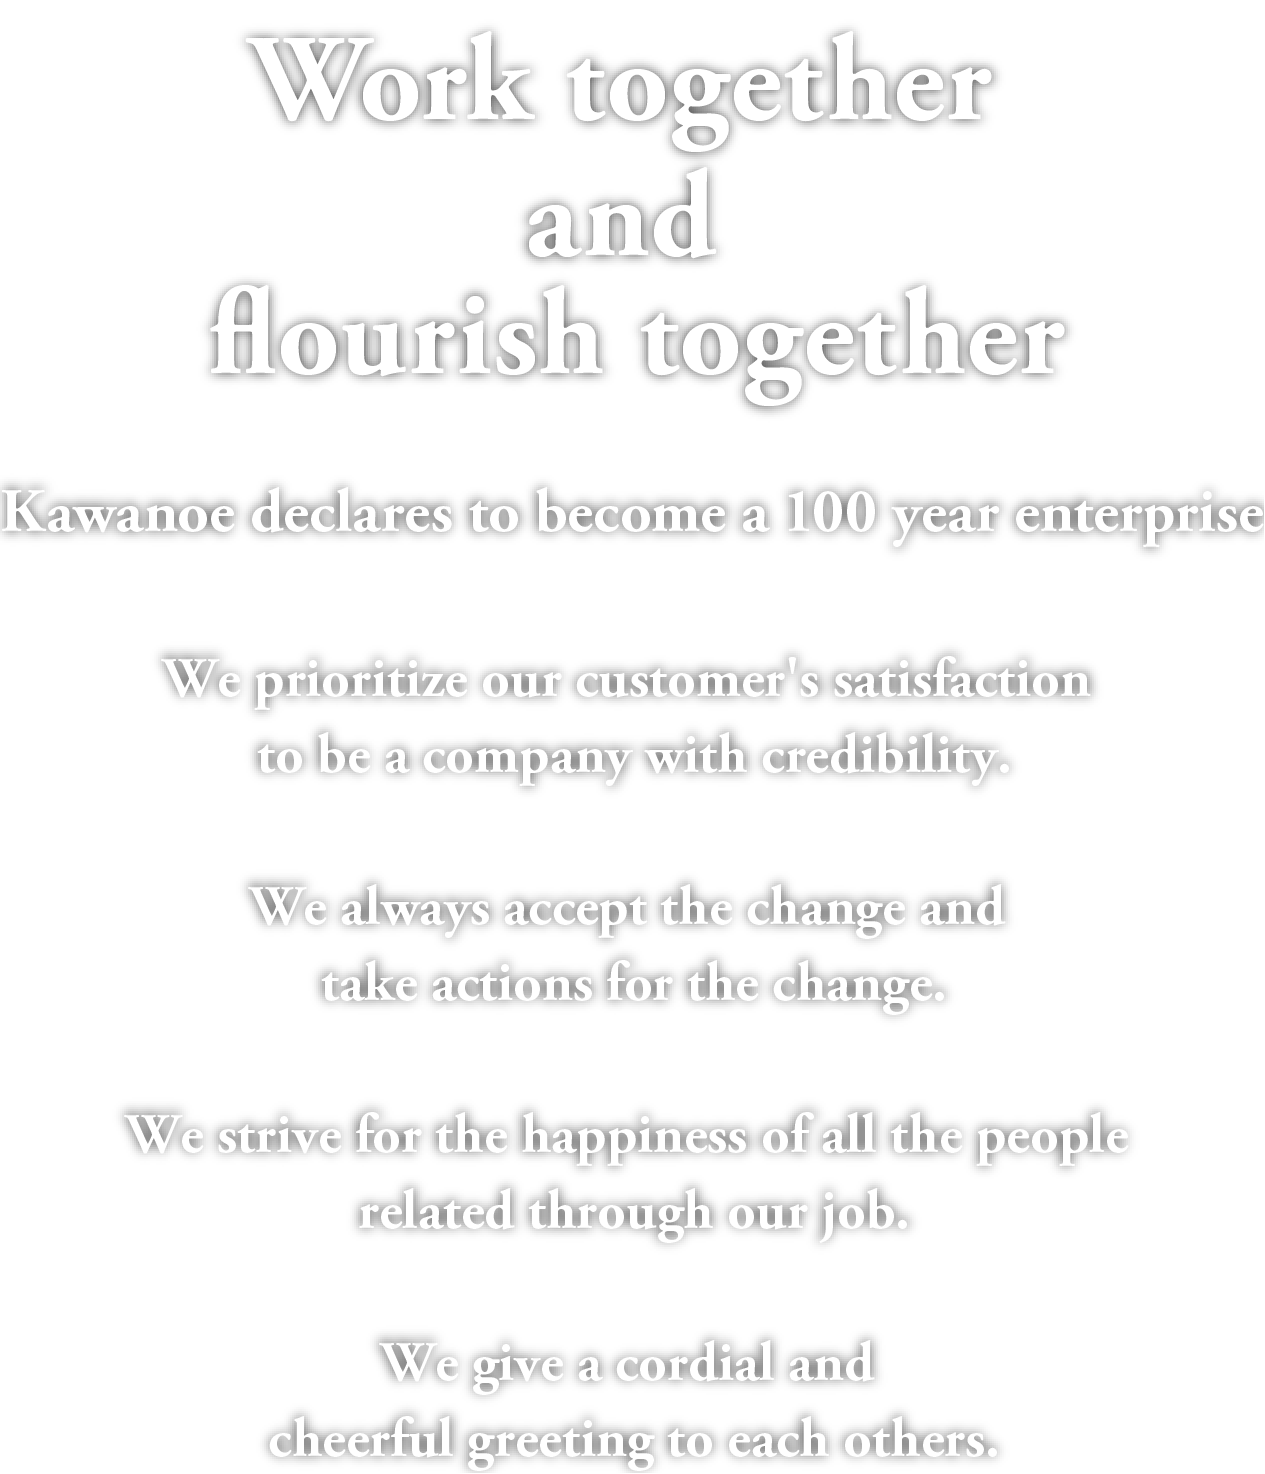 Work together and flourish together.Kawanoe declares to become a 100 year enterprise.We prioritize our customer's satisfaction to be a company with credibility.We always accept the change and take actions for the change.We strive for the happiness of all the people related through our job.We give a cordial and cheerful greeting to each others.